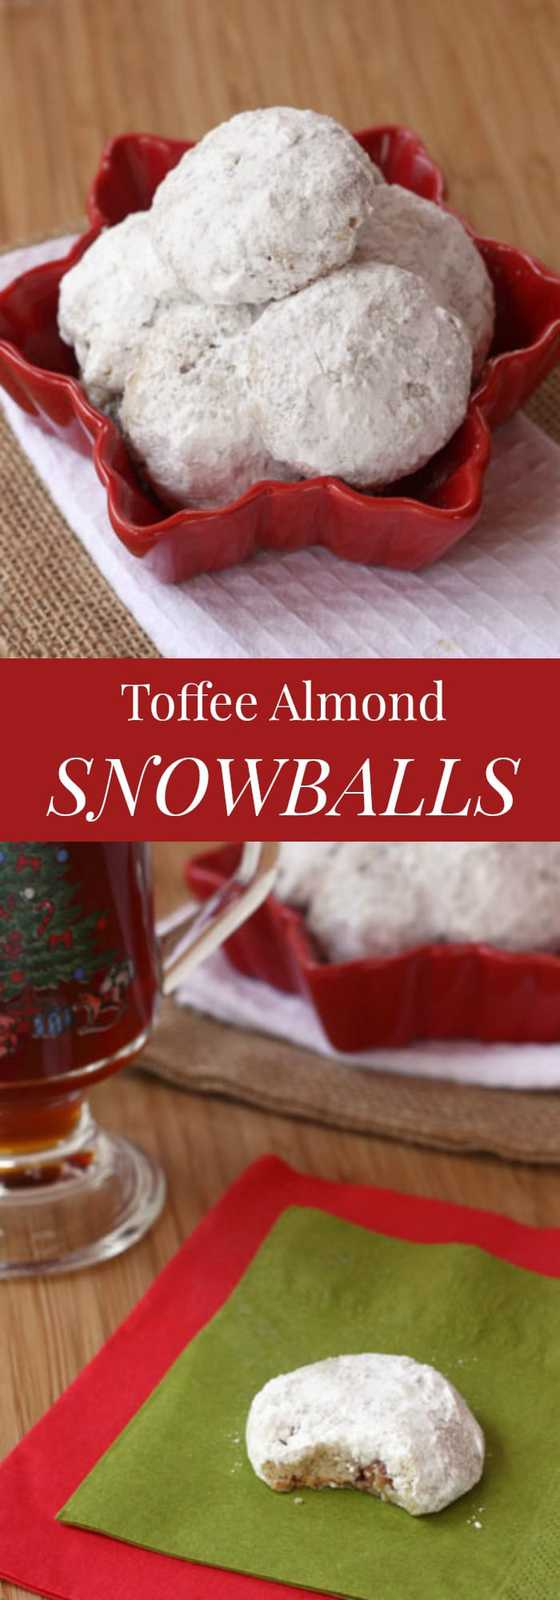 Toffee Almond Snowball Cookies - perfect with your cup of coffee or tea! | cupcakesandkalechips.com